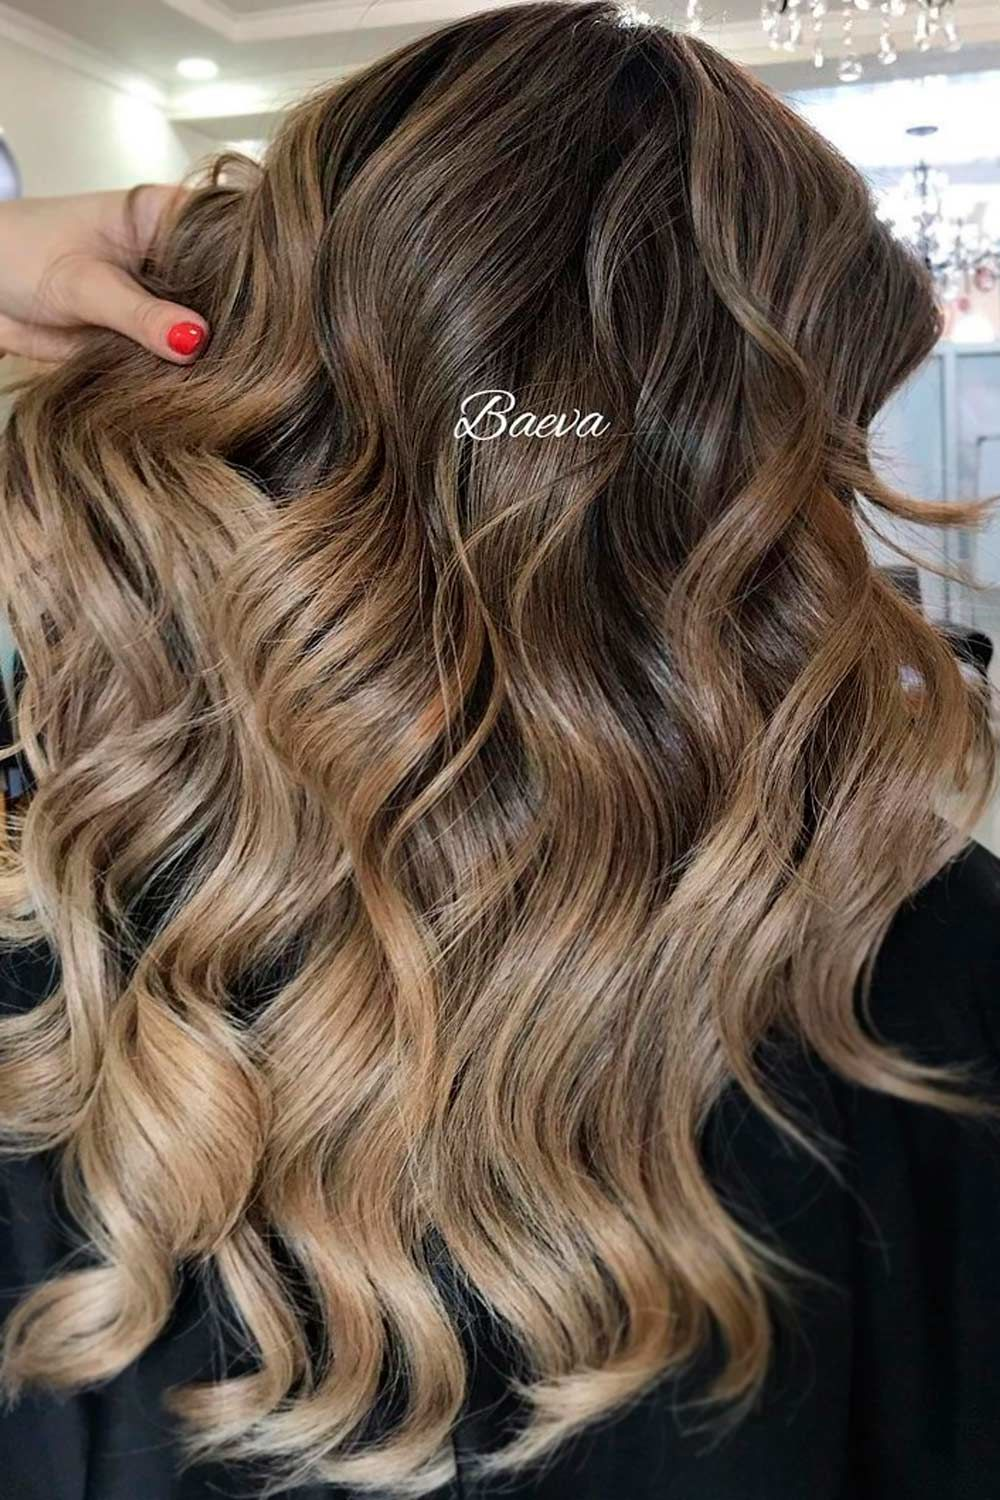 Silvery Blonde Highlights On Chestnut Brown Hair , hair highlights for dark hair, best highlights for dark brown hair, chocolate brown hair with blonde highlights